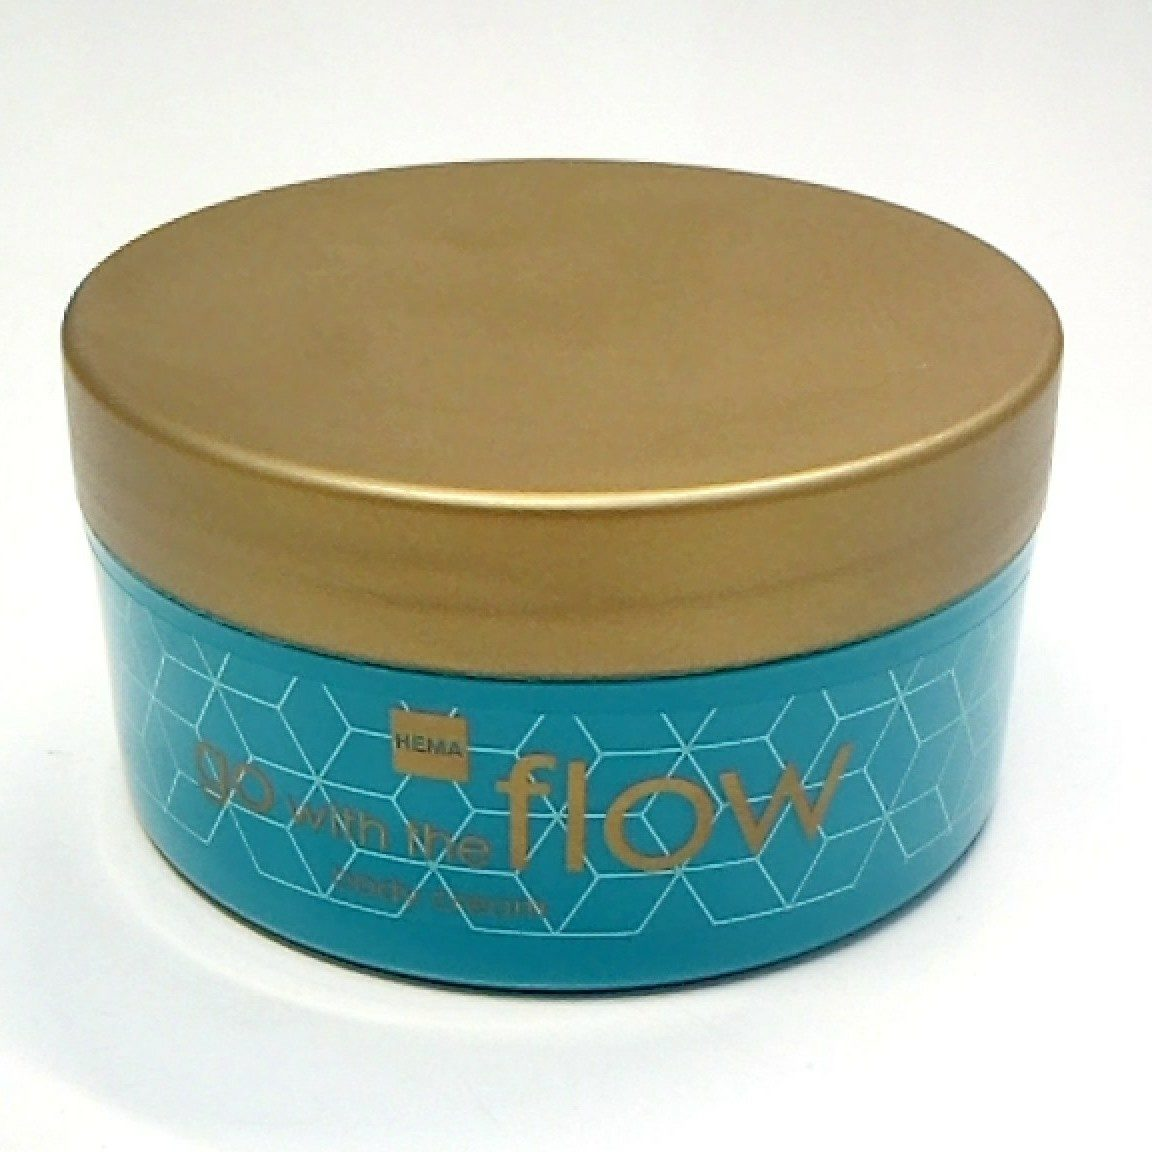 Go With The Flow Body Cream - Product